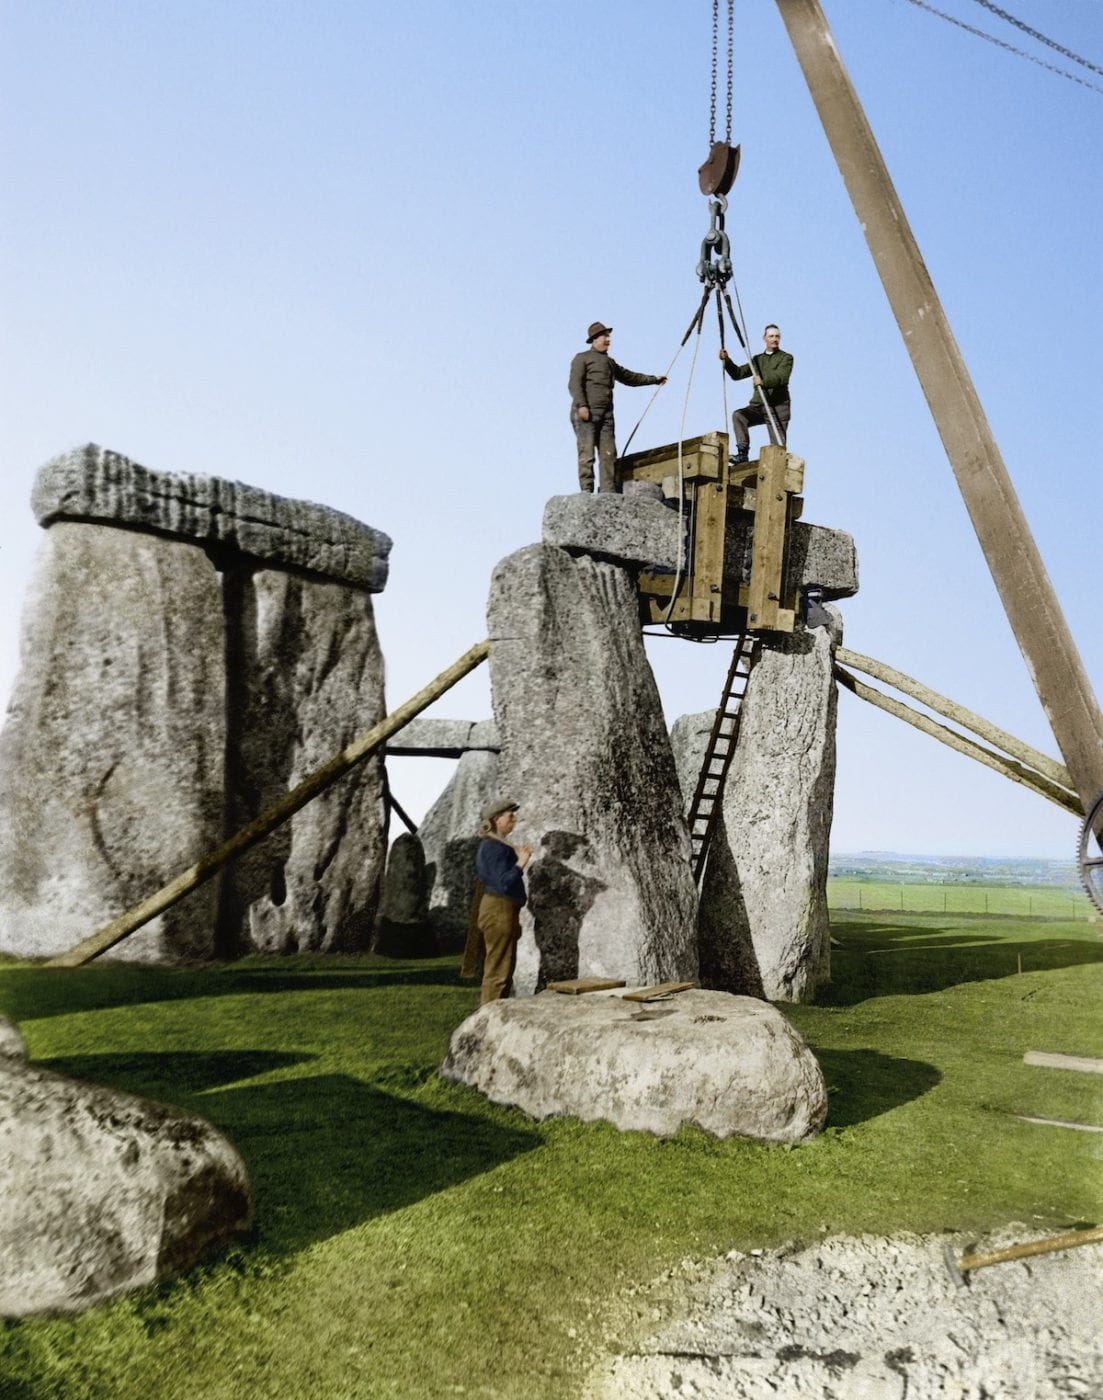 1920 - Excavation and renovation of the Stone Henge monument - 1